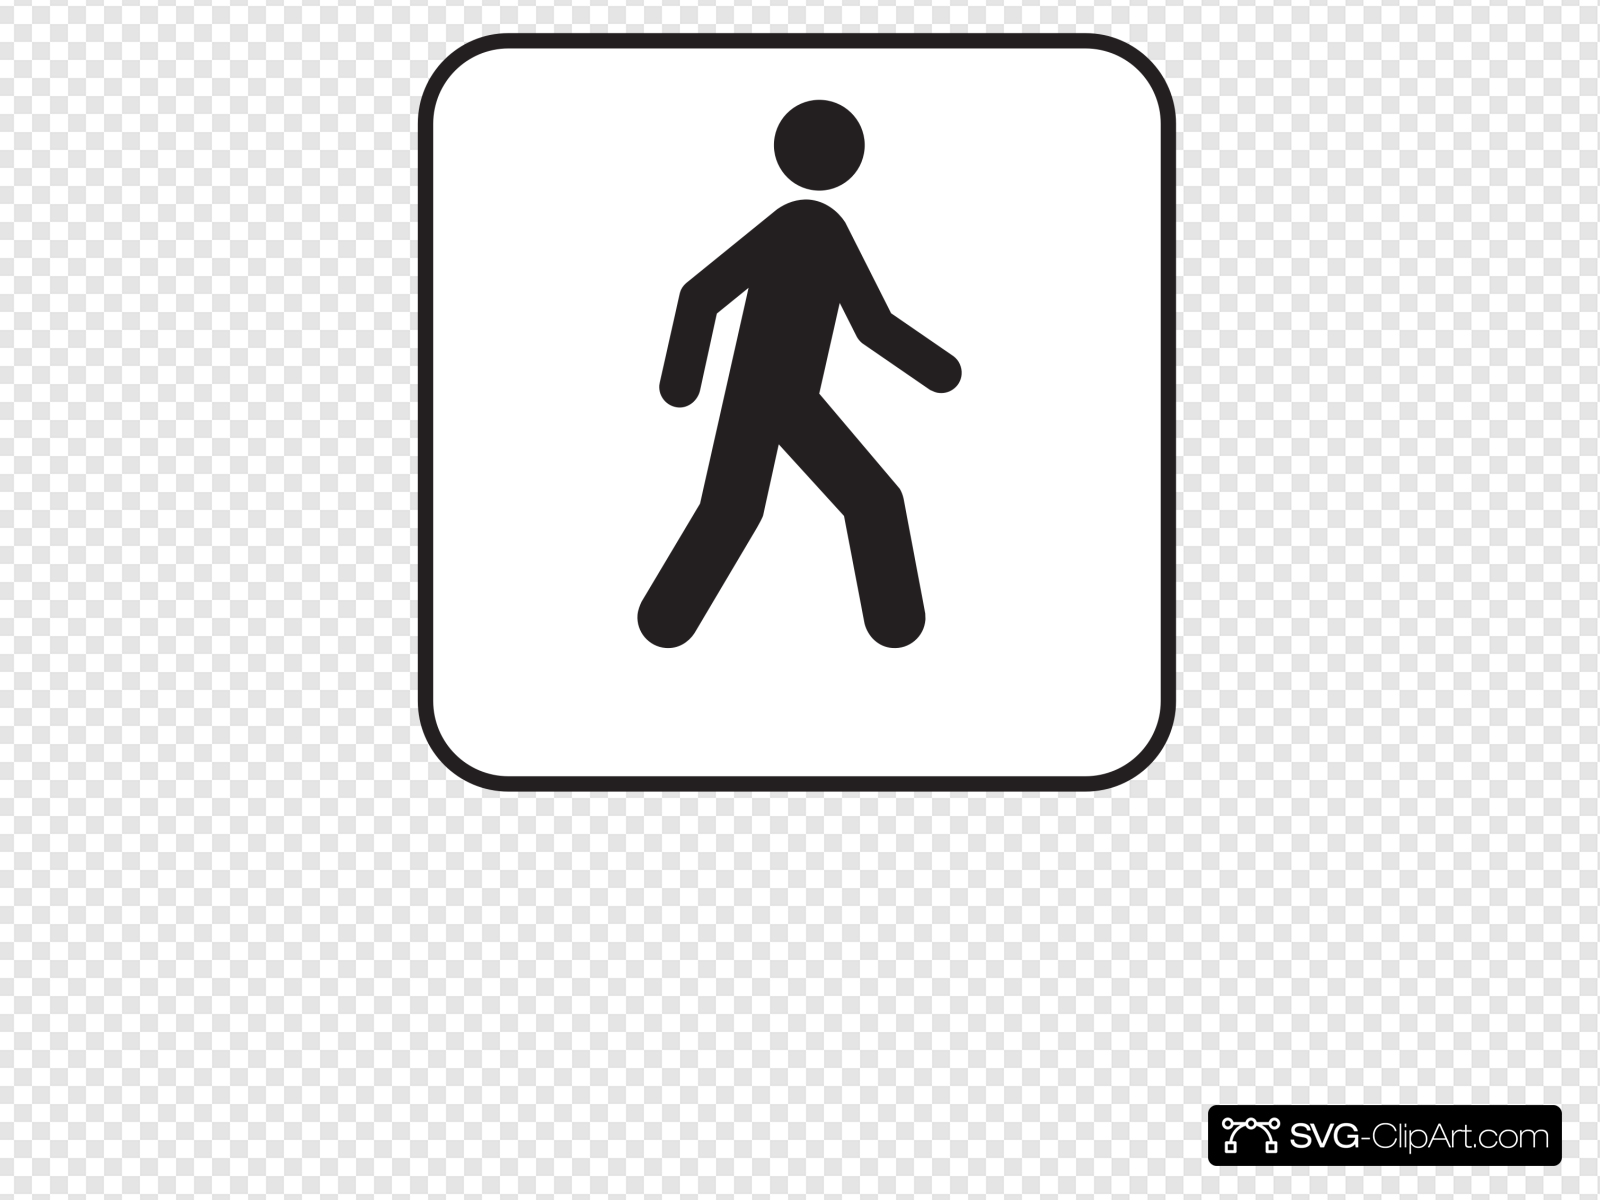 Clipart walking with cars in the street black and white clip art transparent library Walking Man White Clip art, Icon and SVG - SVG Clipart clip art transparent library